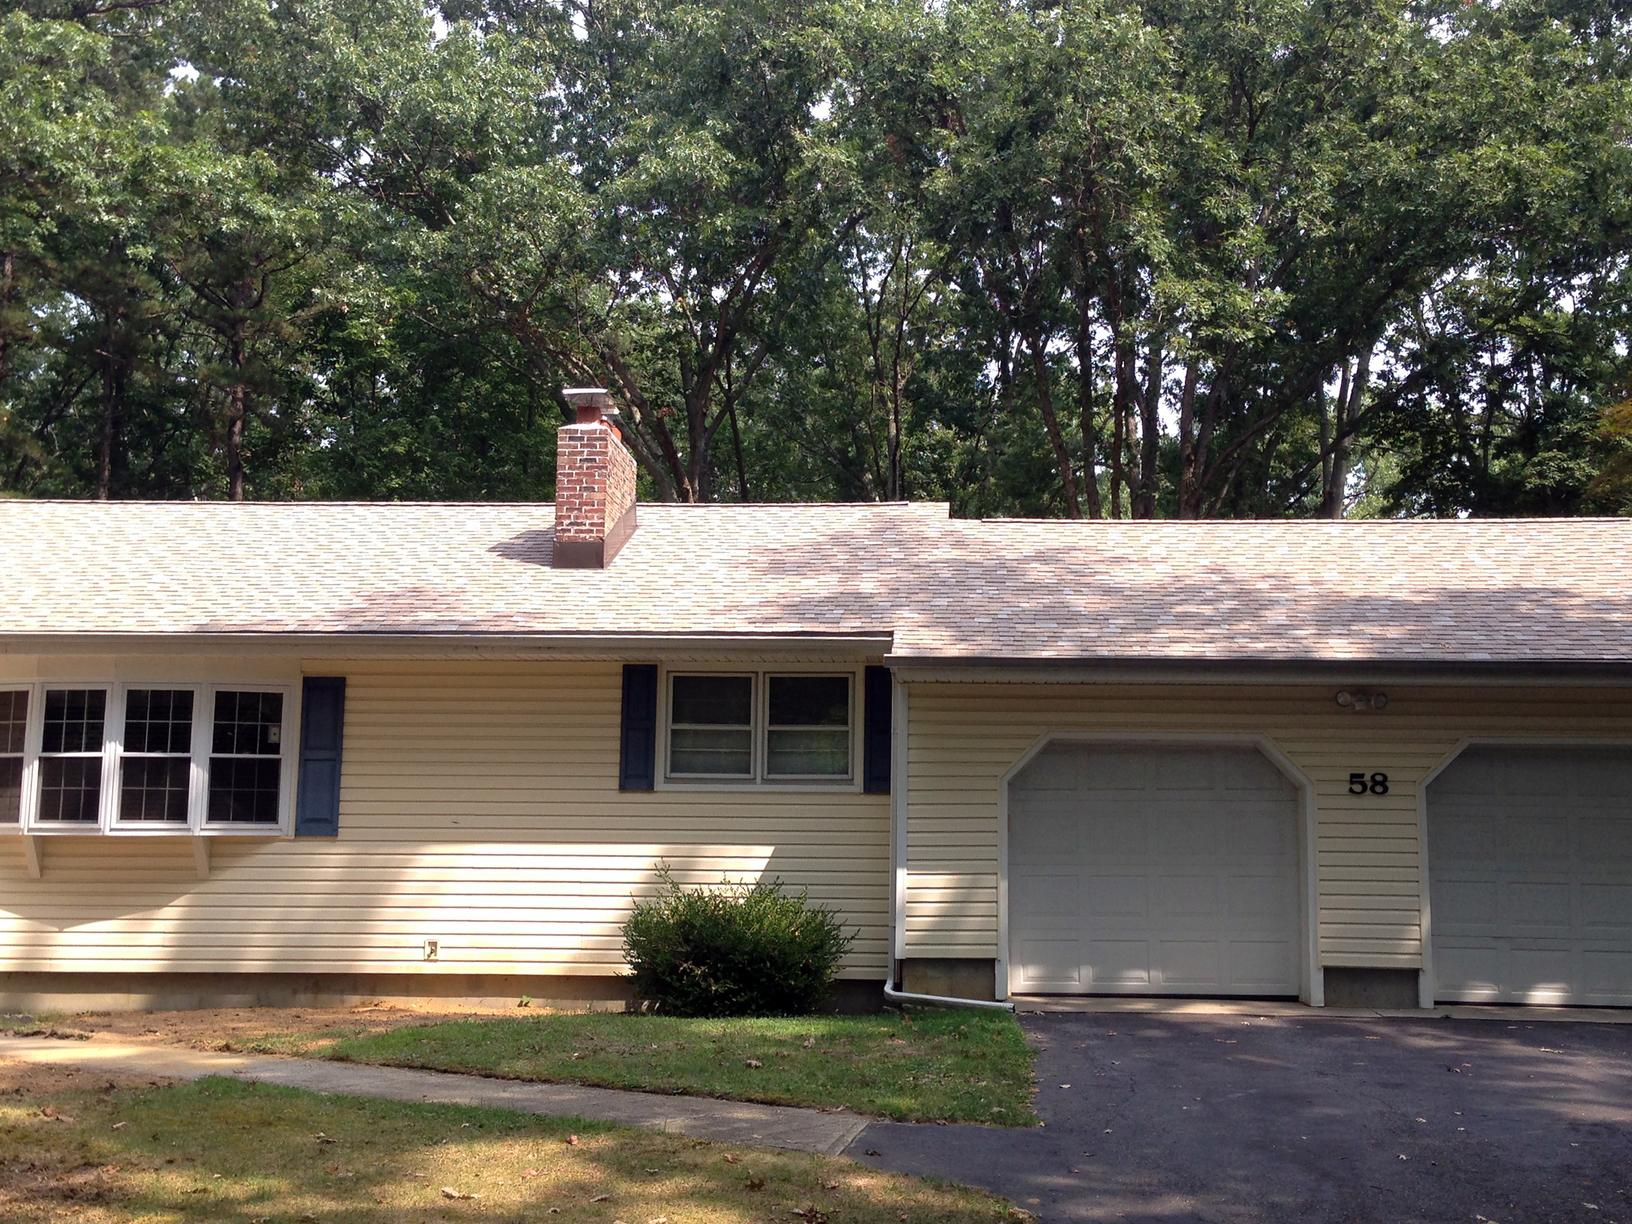 Freehold NJ Roof Replacement Amber Roof - After Photo